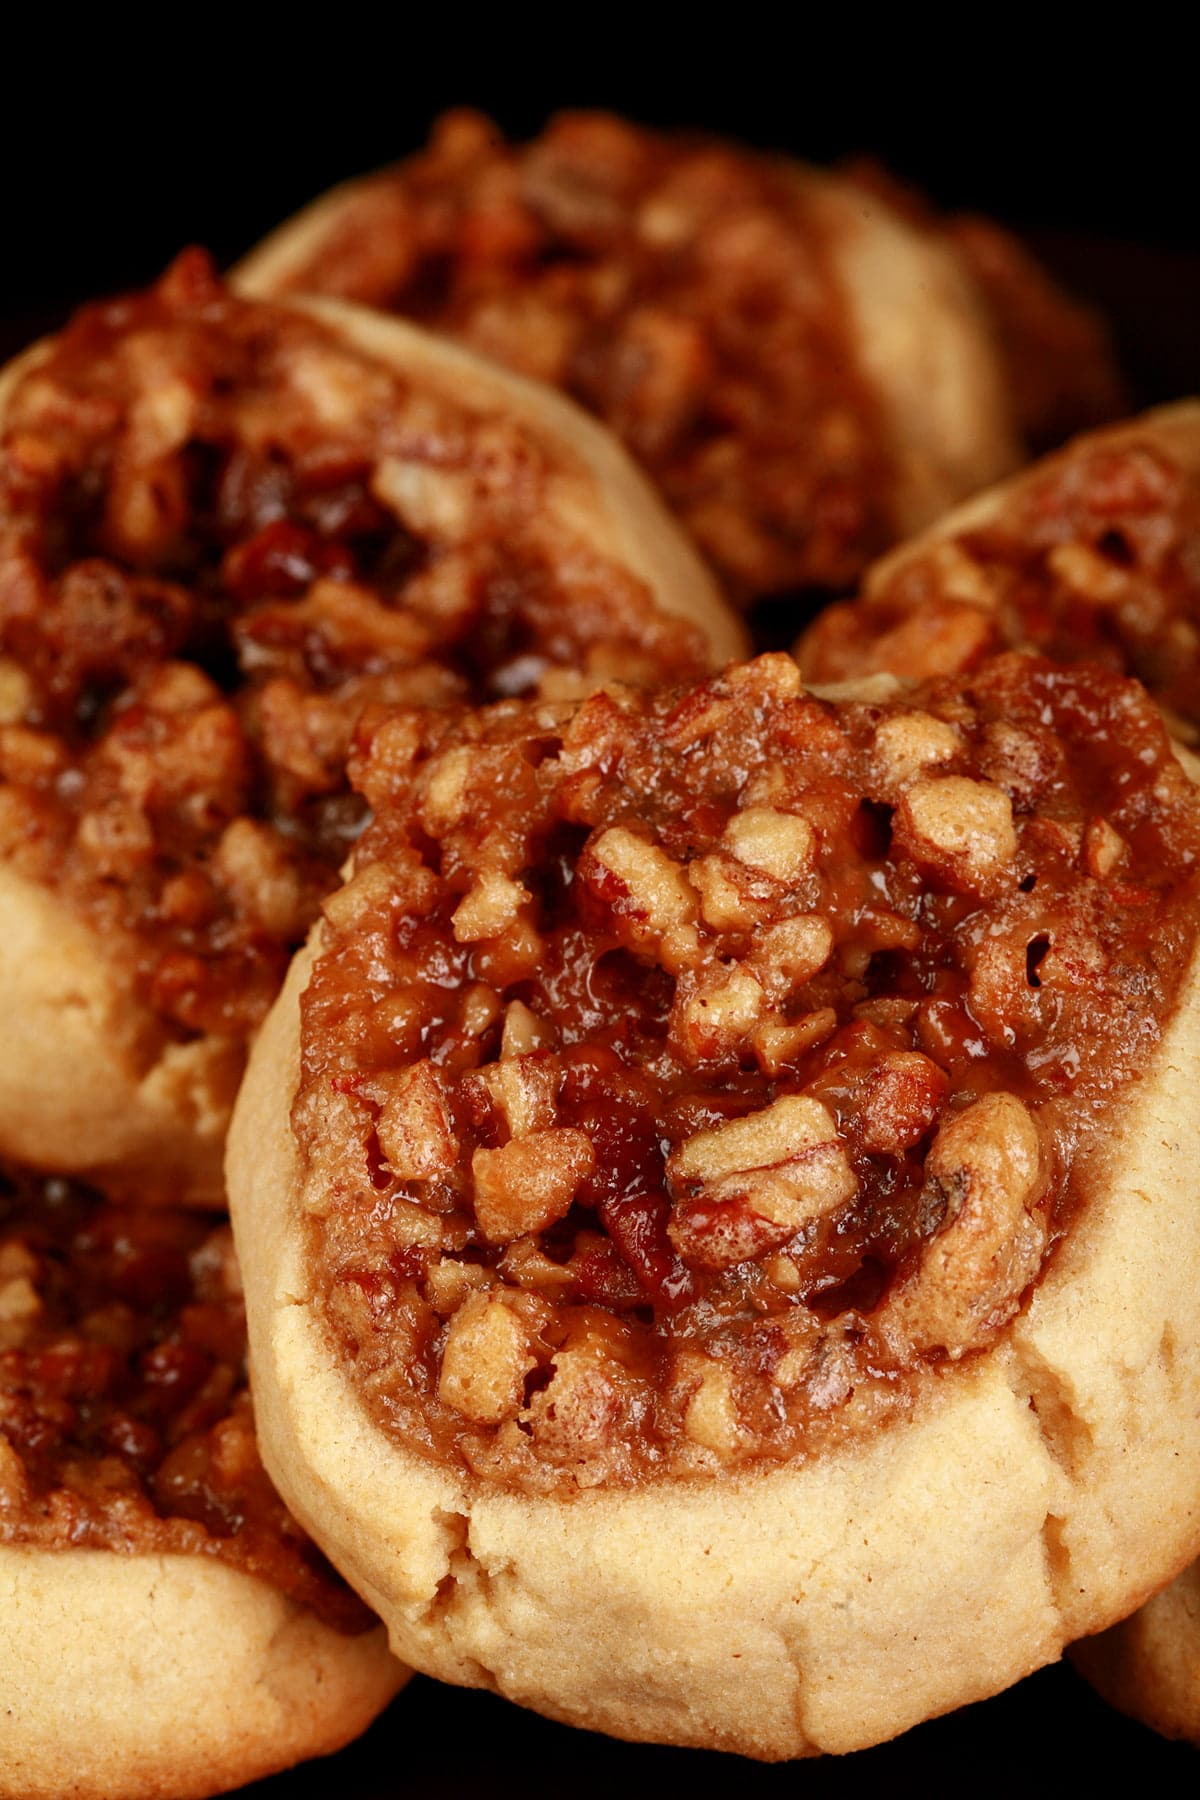 A small plate with Pecan Pie Cookies on it. Each cookie is round and golden brown, with a center indentation filled with chopped pecans and caramelized brown sugar.